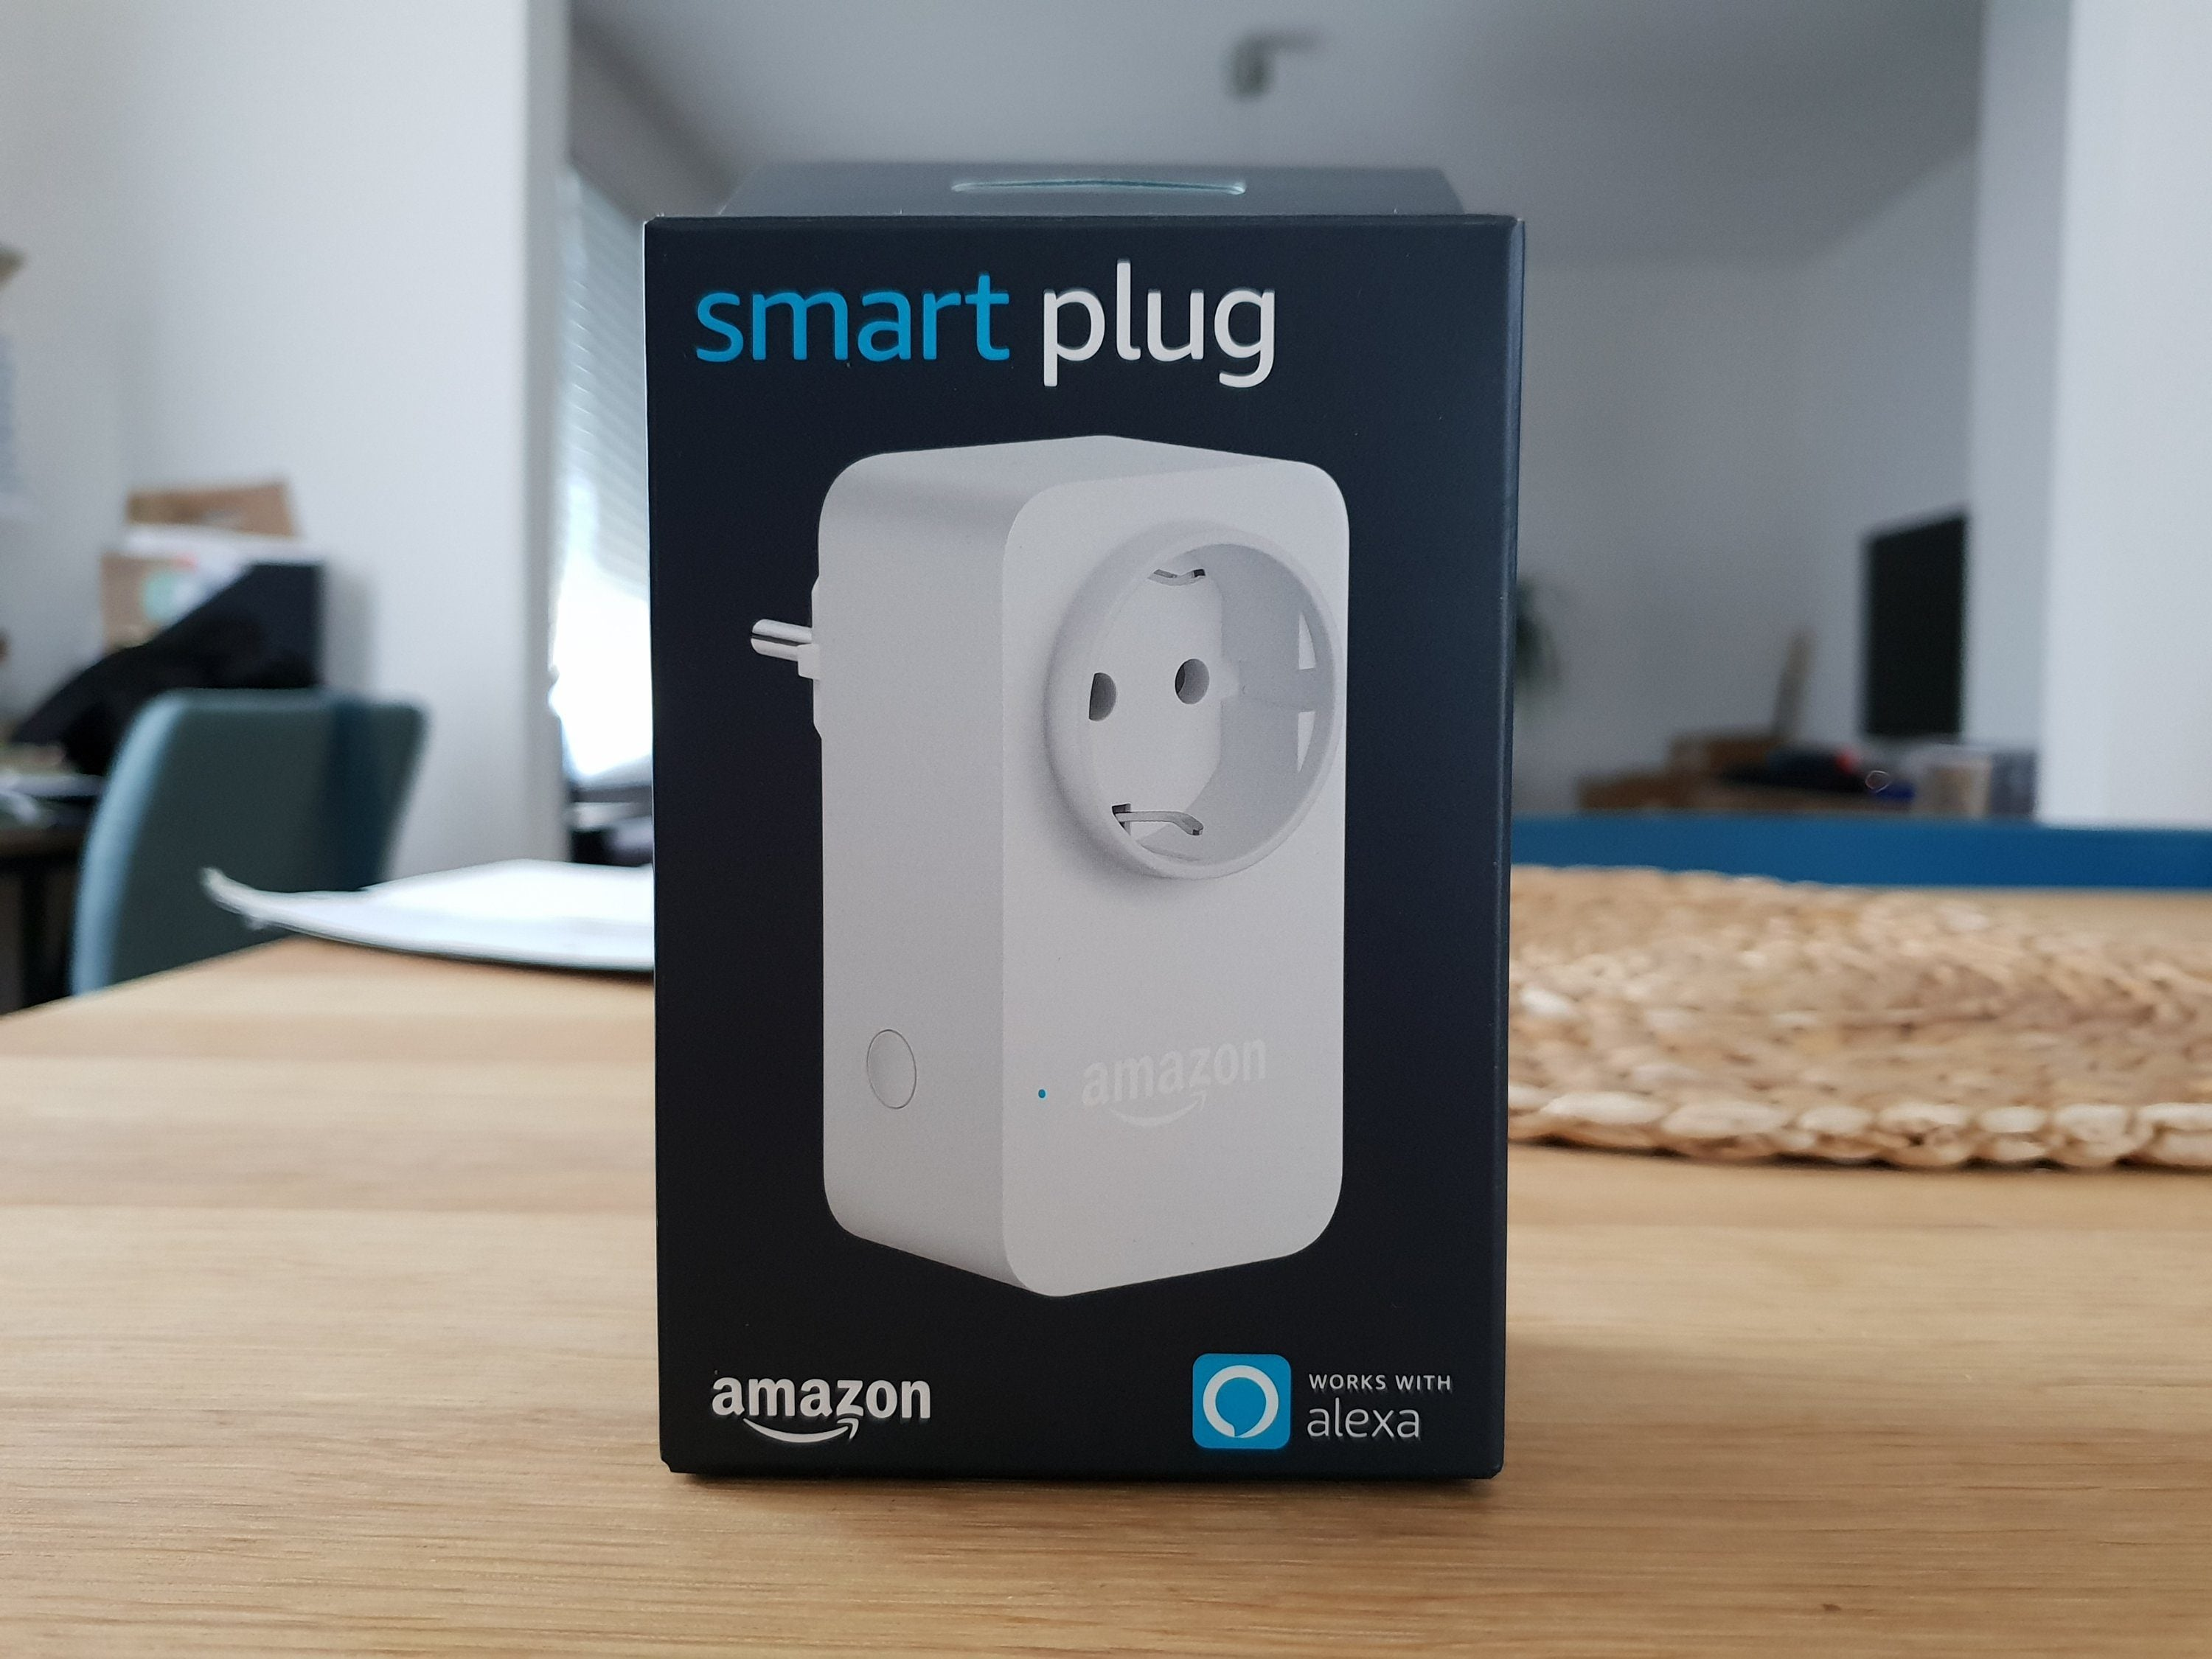 Amazon Smart Plug WLAN-Steckdose im Test 11